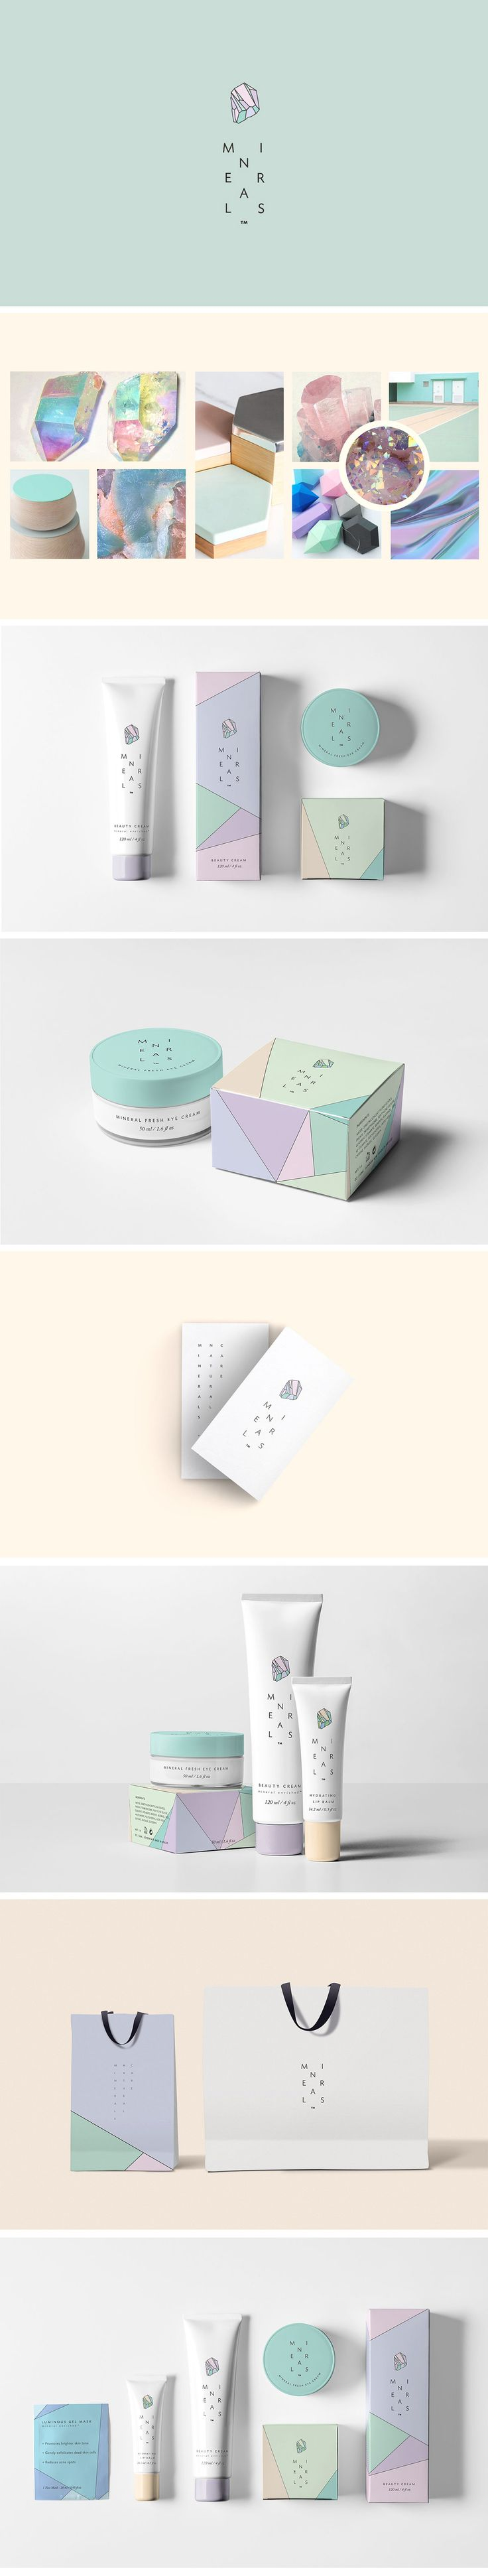 Inspirational Bunch: A Bunch of Beauty Products Branding - Elumina / Branding / Packaging / Ideas / Inspiratoin / Brand / Pack / Design / Minimalist / Minimal / Beauty / Product / Skincare / Cosmetic / Pastel / Color Palette / Feminine / Cute / Soothing / Modern / Clean